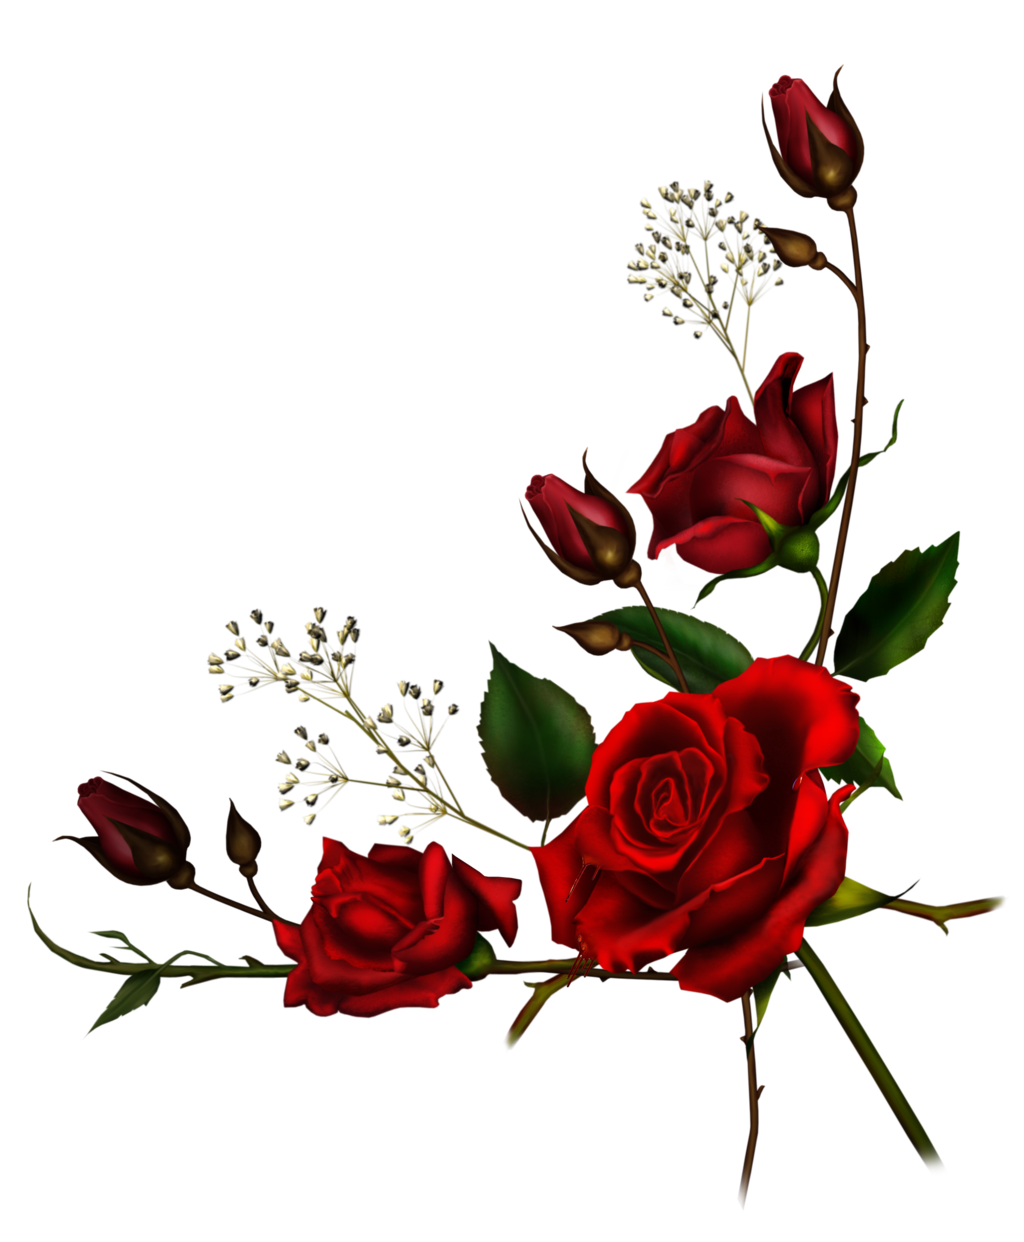 Transparent_Red_Rose_PNG_Clipart_Picture.png (3087×3078